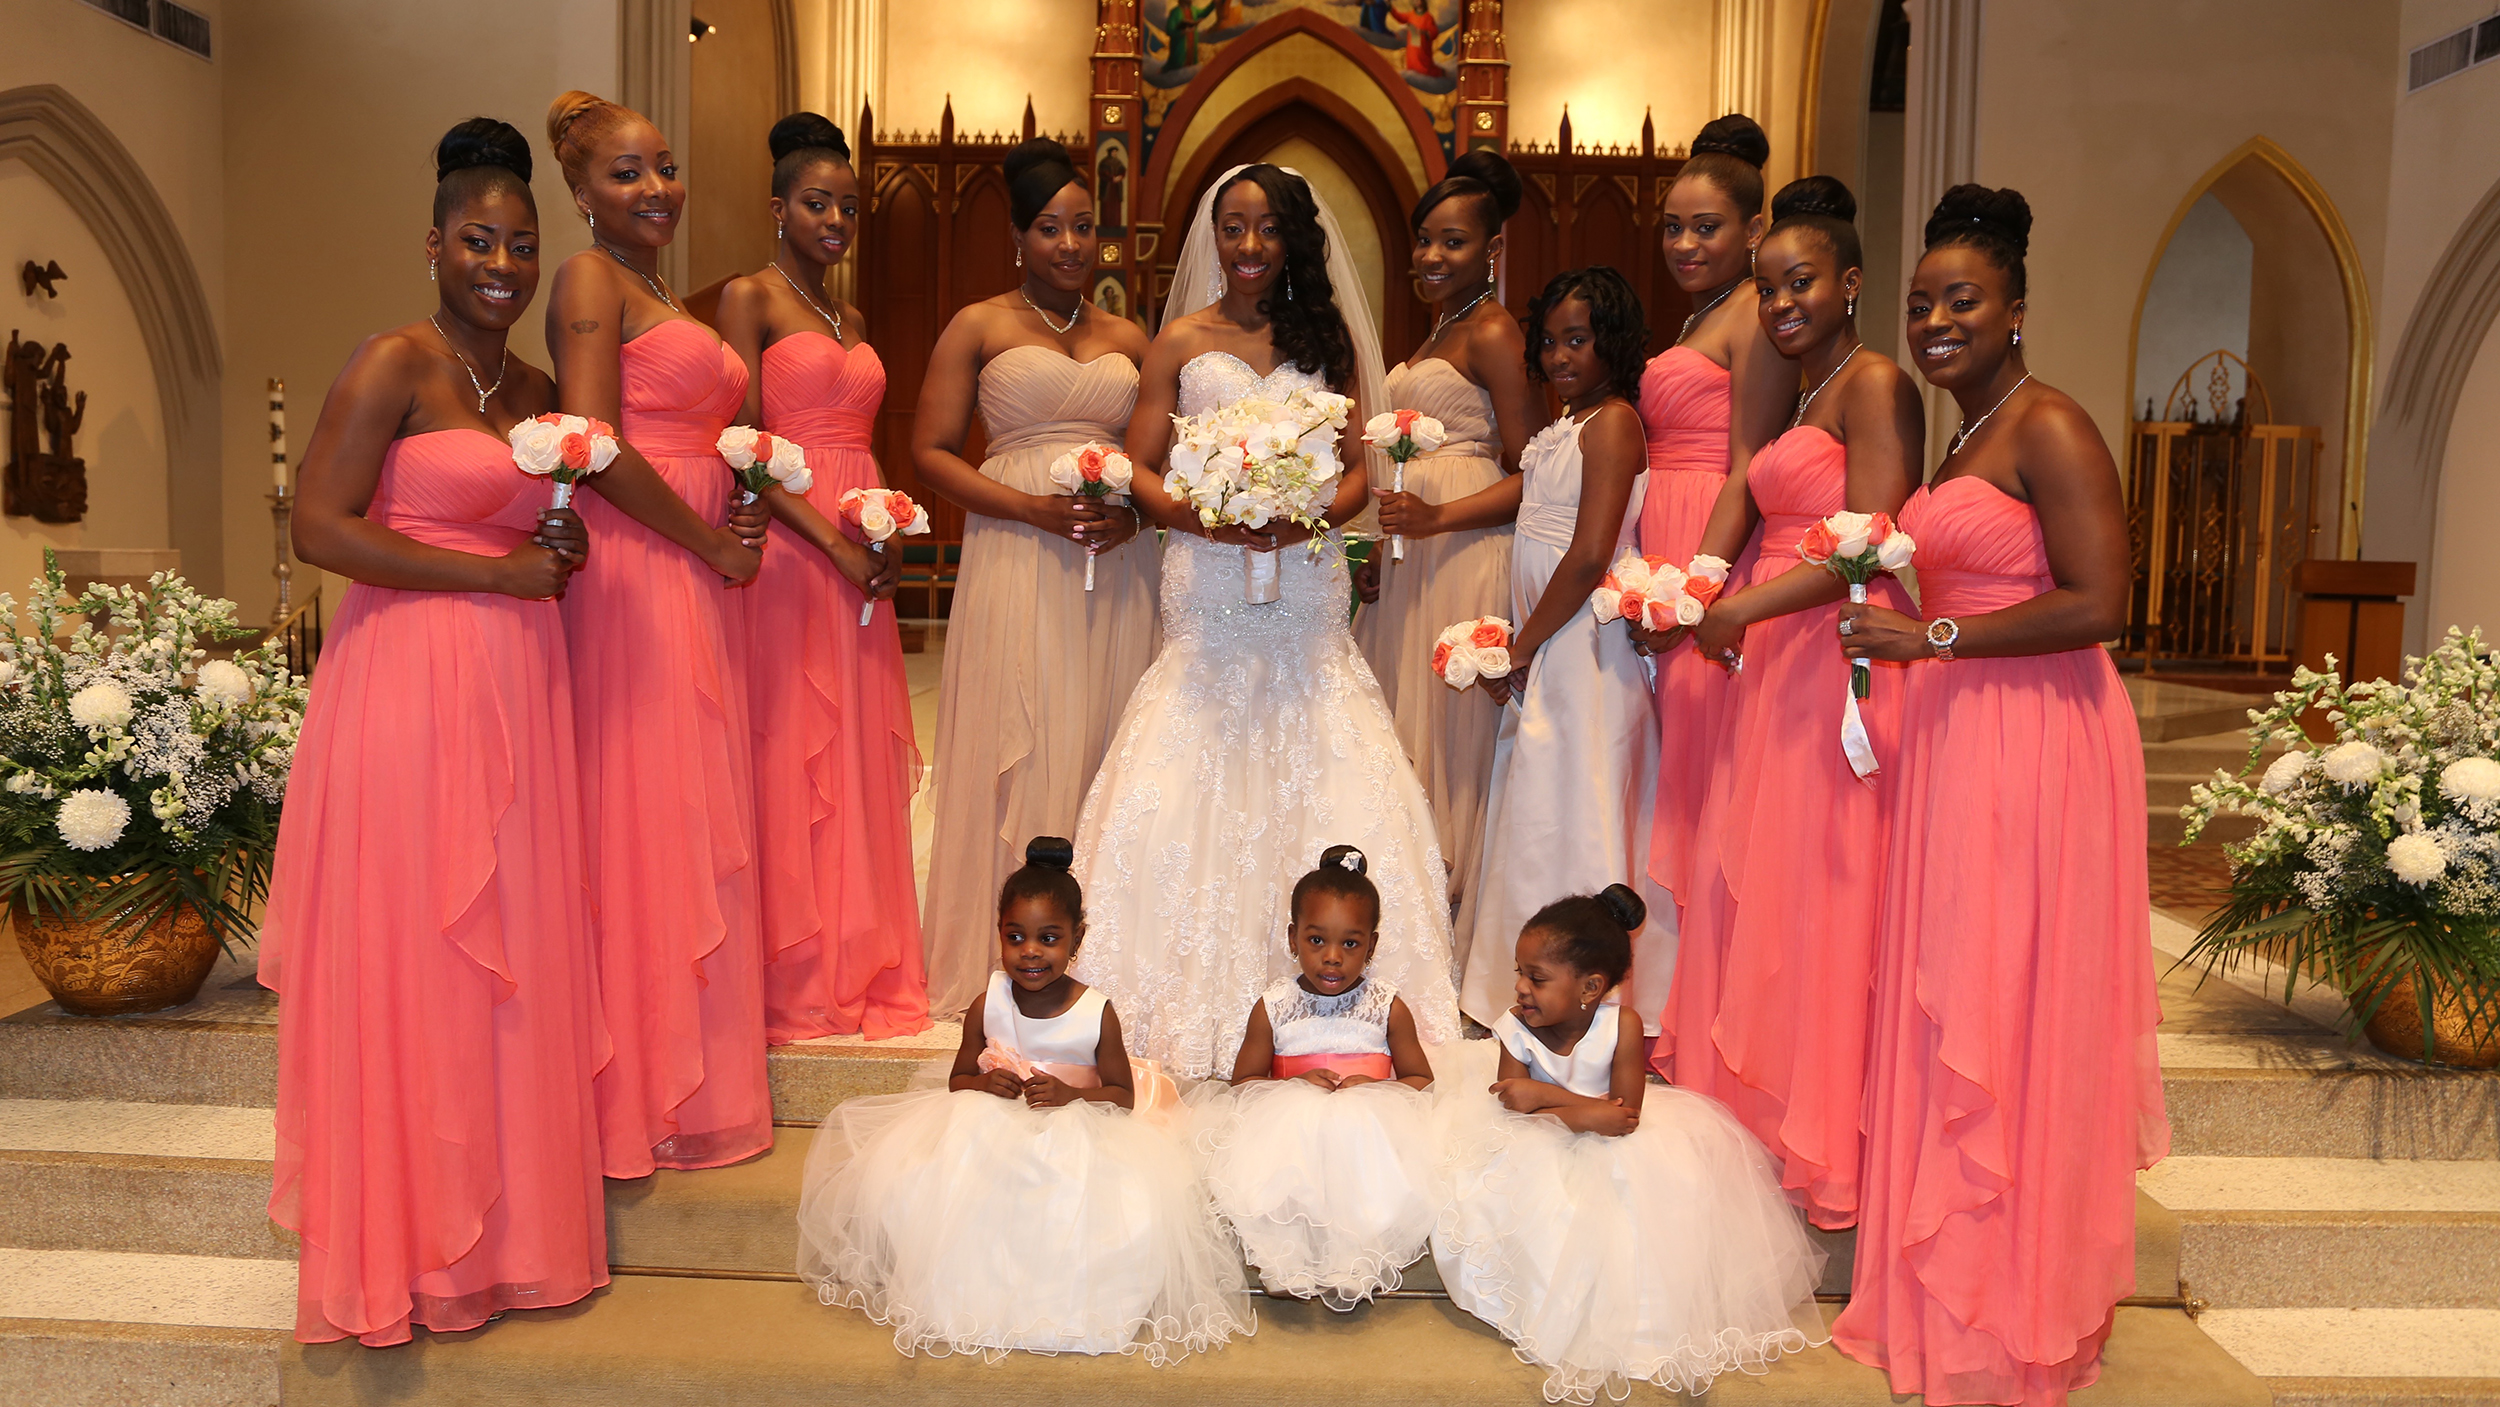 Bridesmaids And Bridal Party Tips: What I Wish I Knew